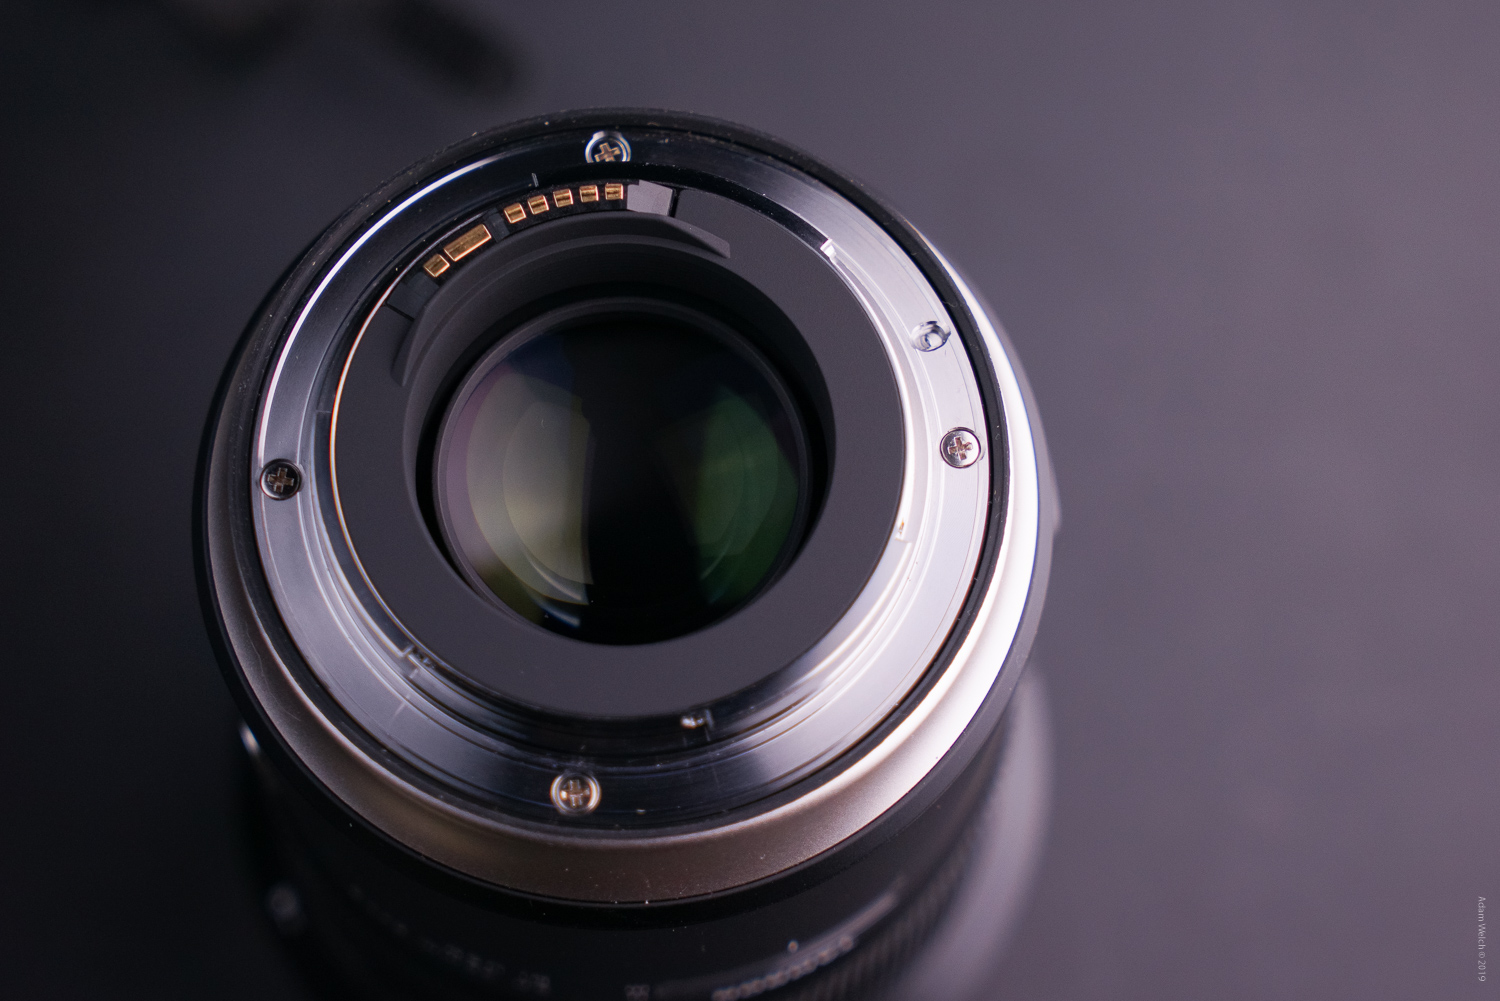 Tamron SP 35mm F/1.4 Lens Review – A Perfectly Executed Prime Lens?